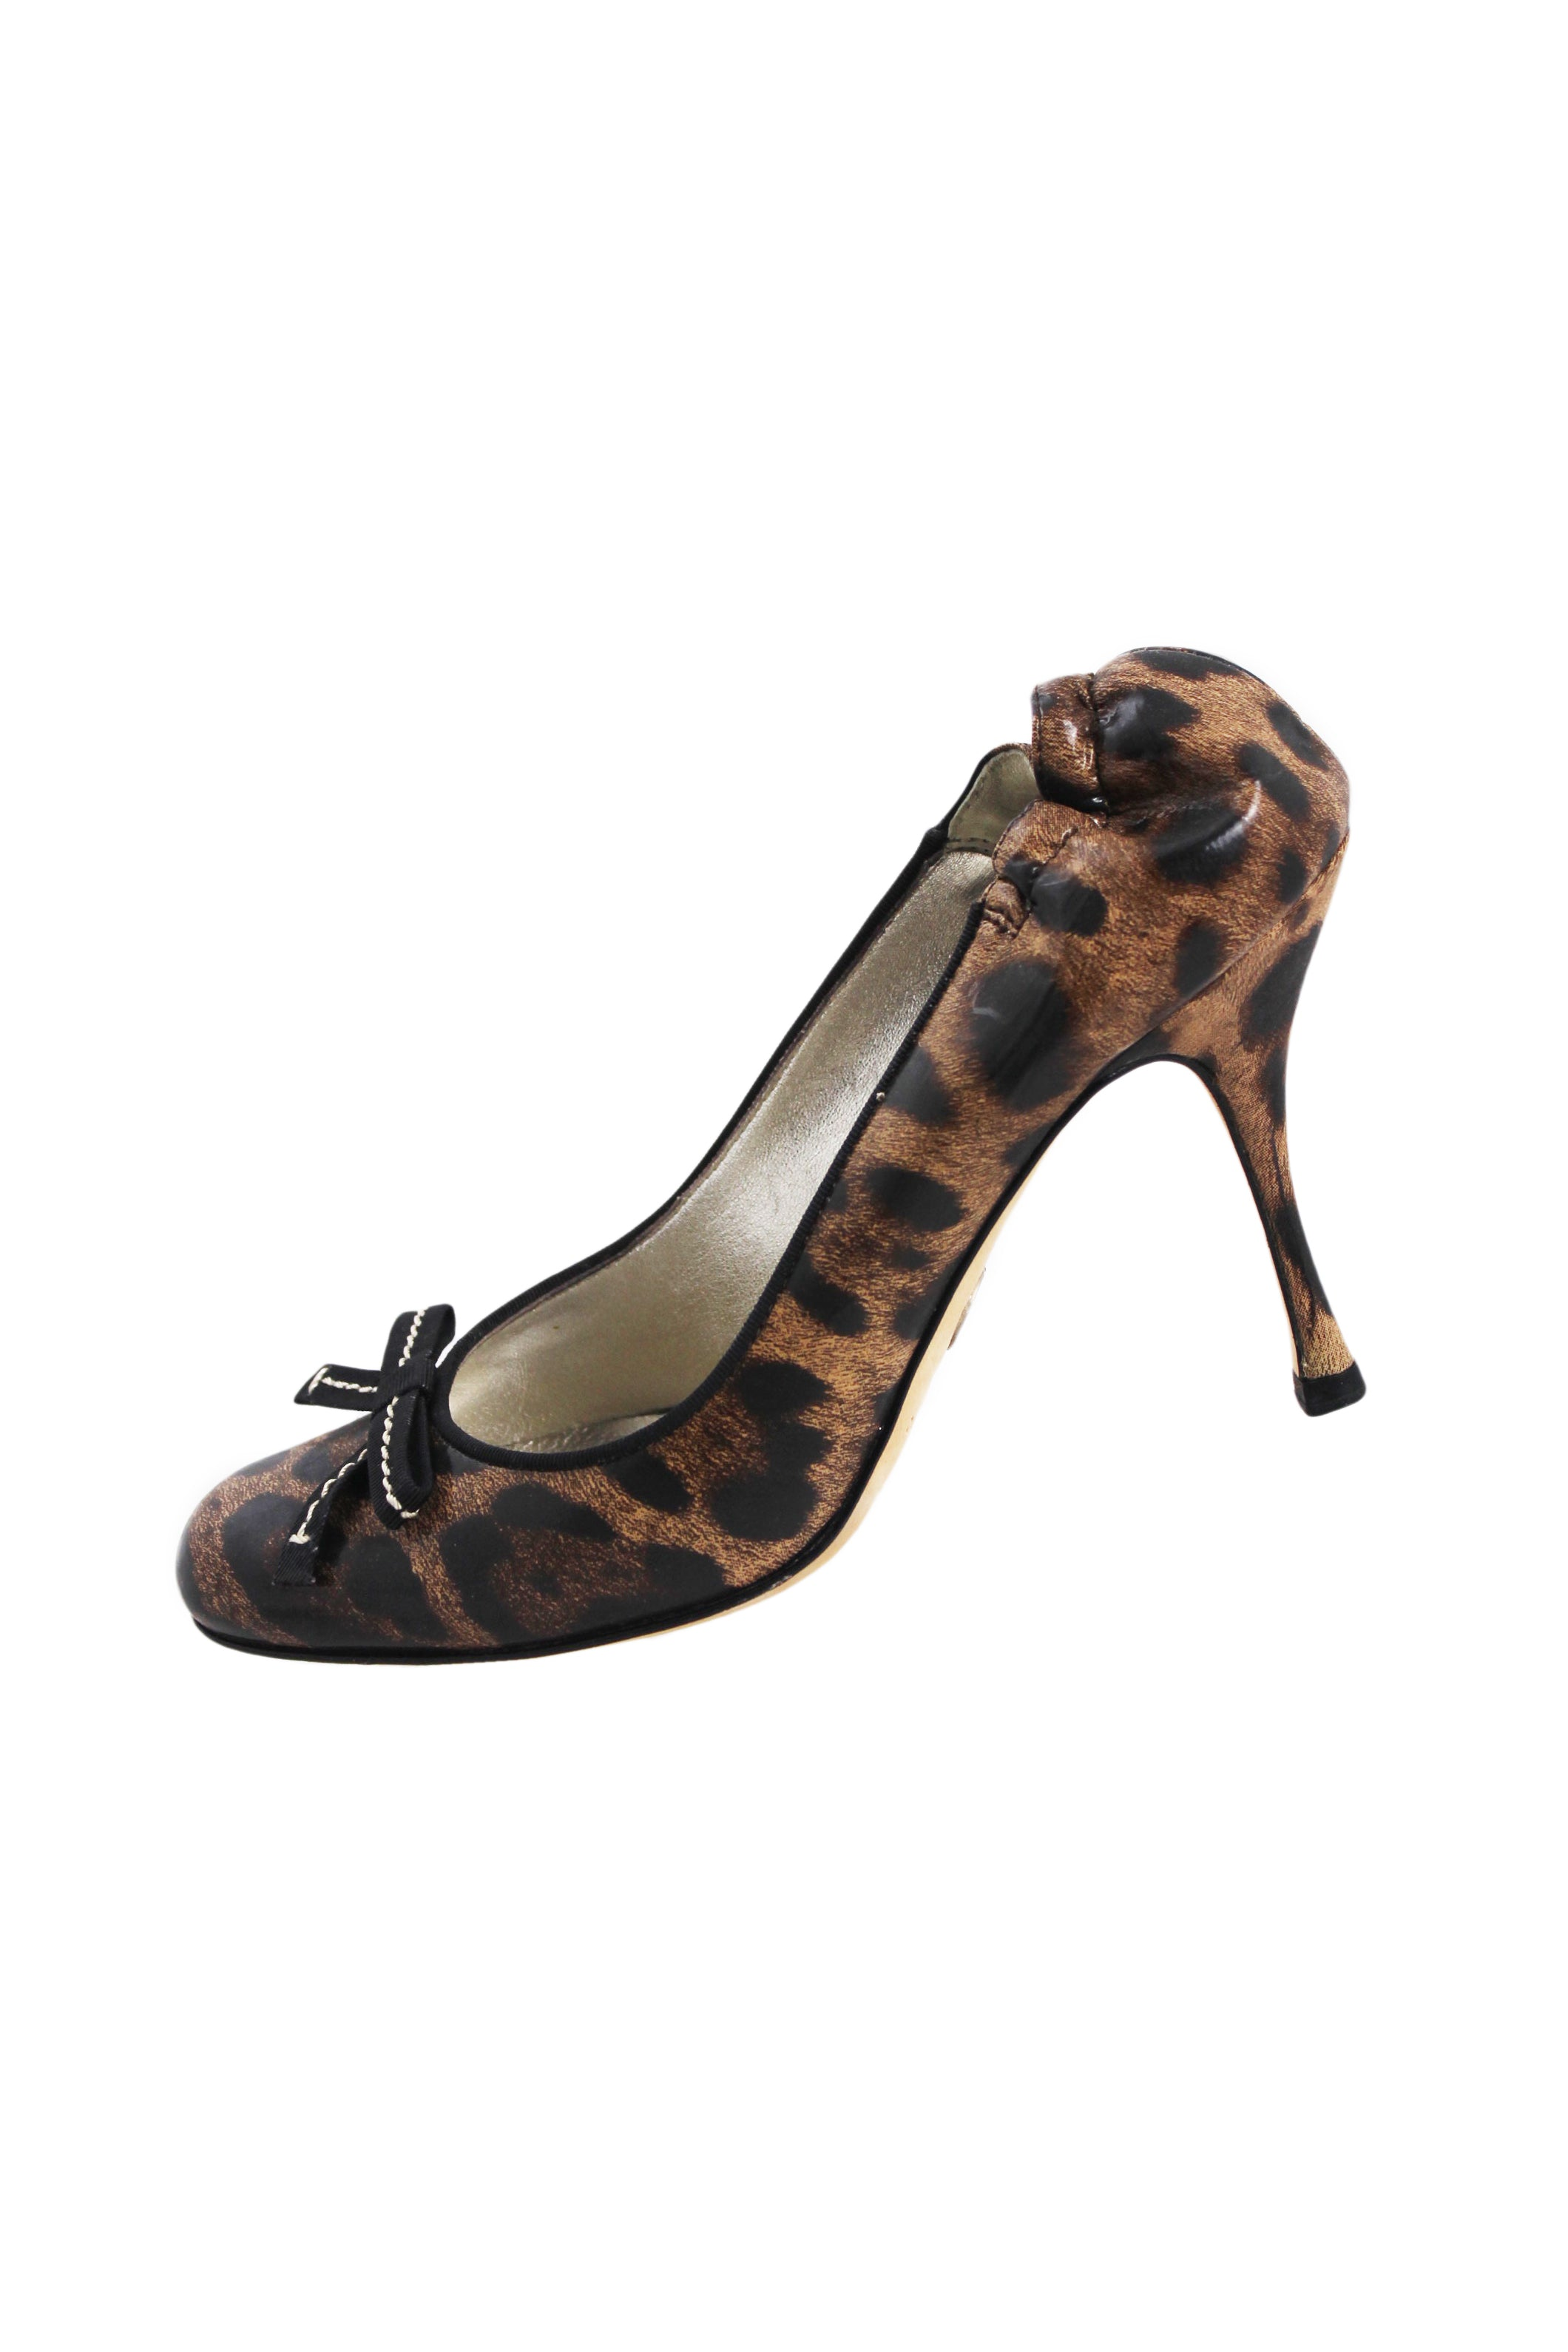 description: dolce & gabbana leopard heels. featuring accent bow on toes and a cinched heel.